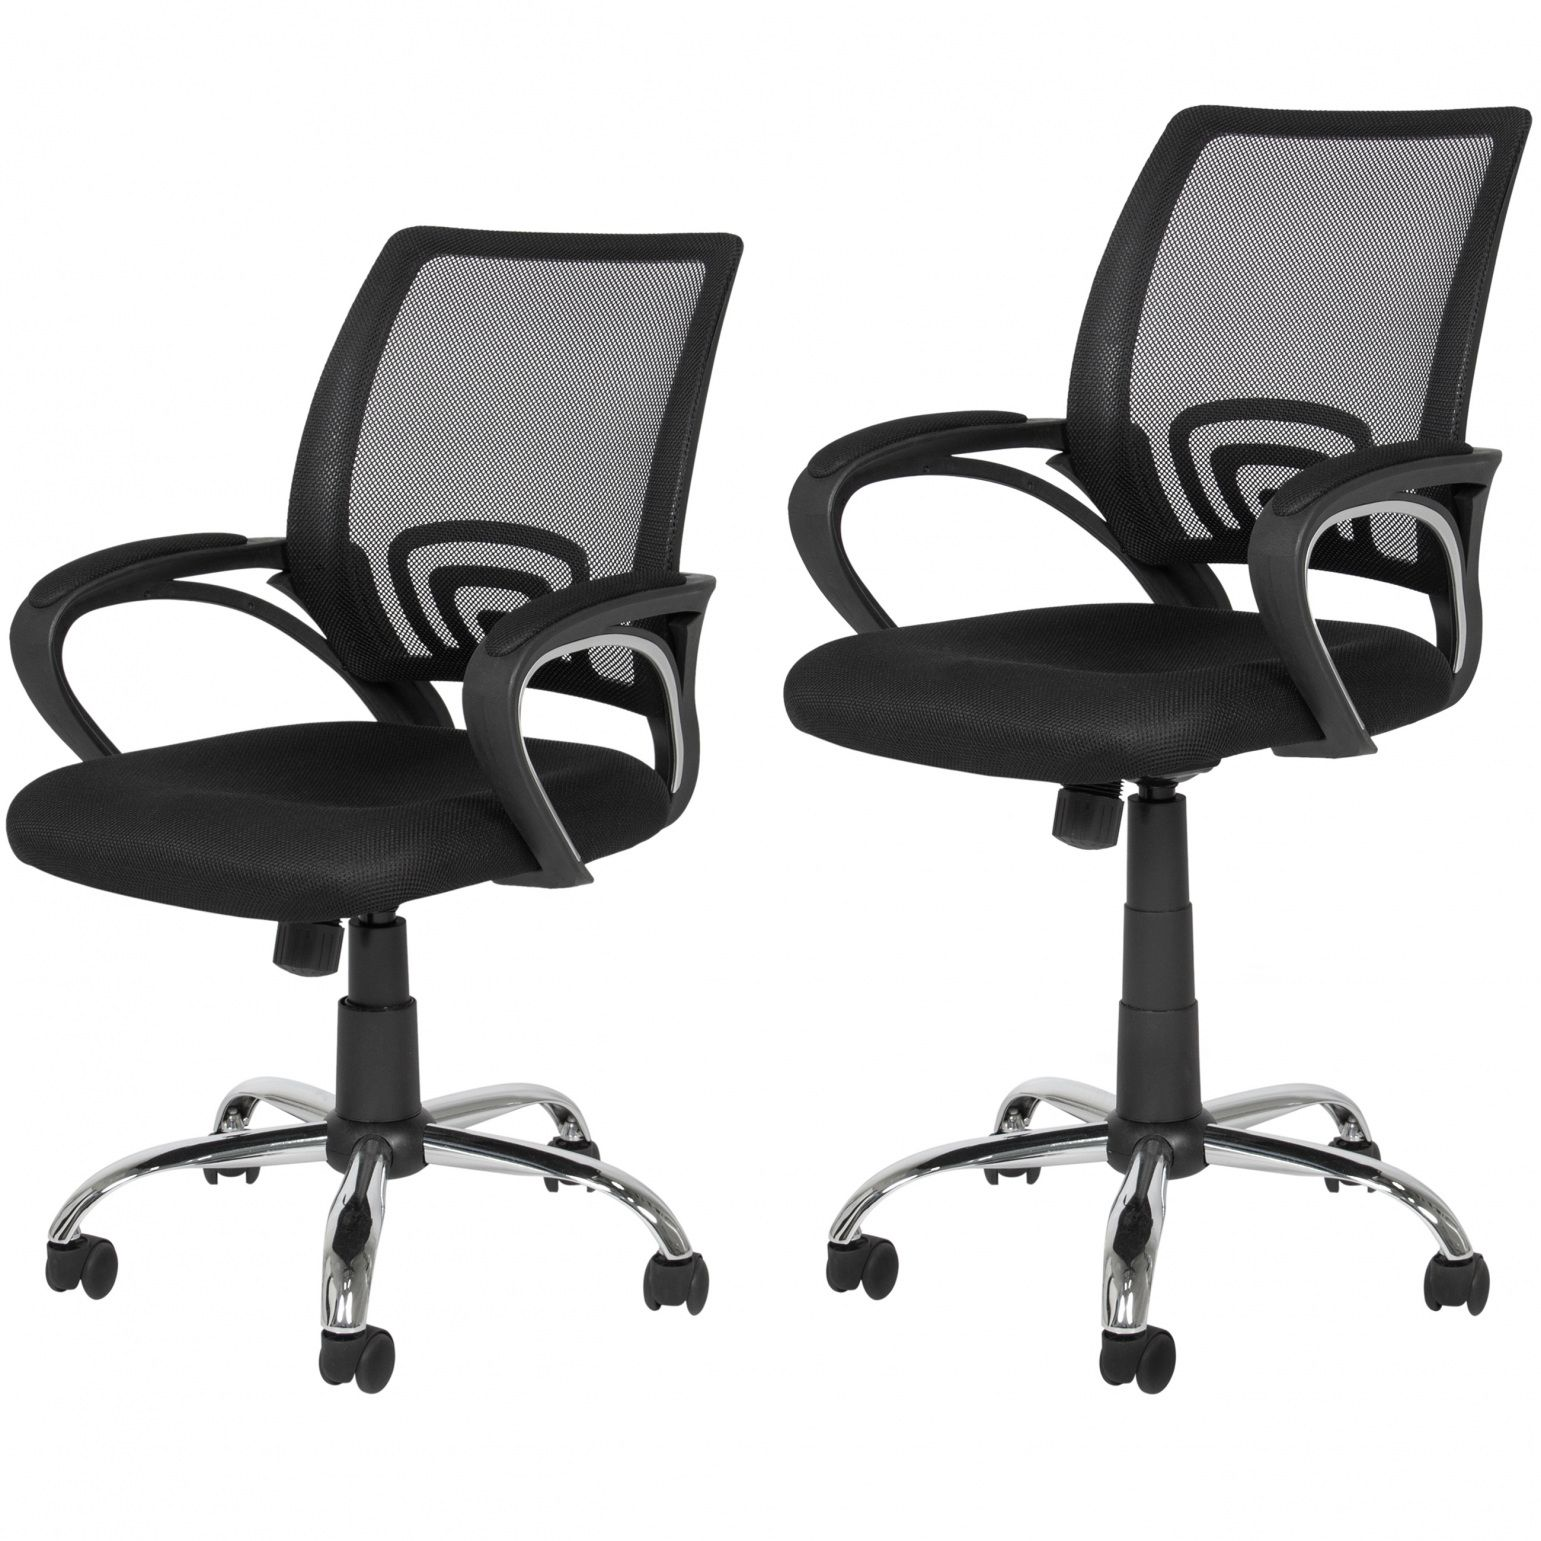 70+ Mid Back Mesh Ergonomic Computer Desk Office Chair